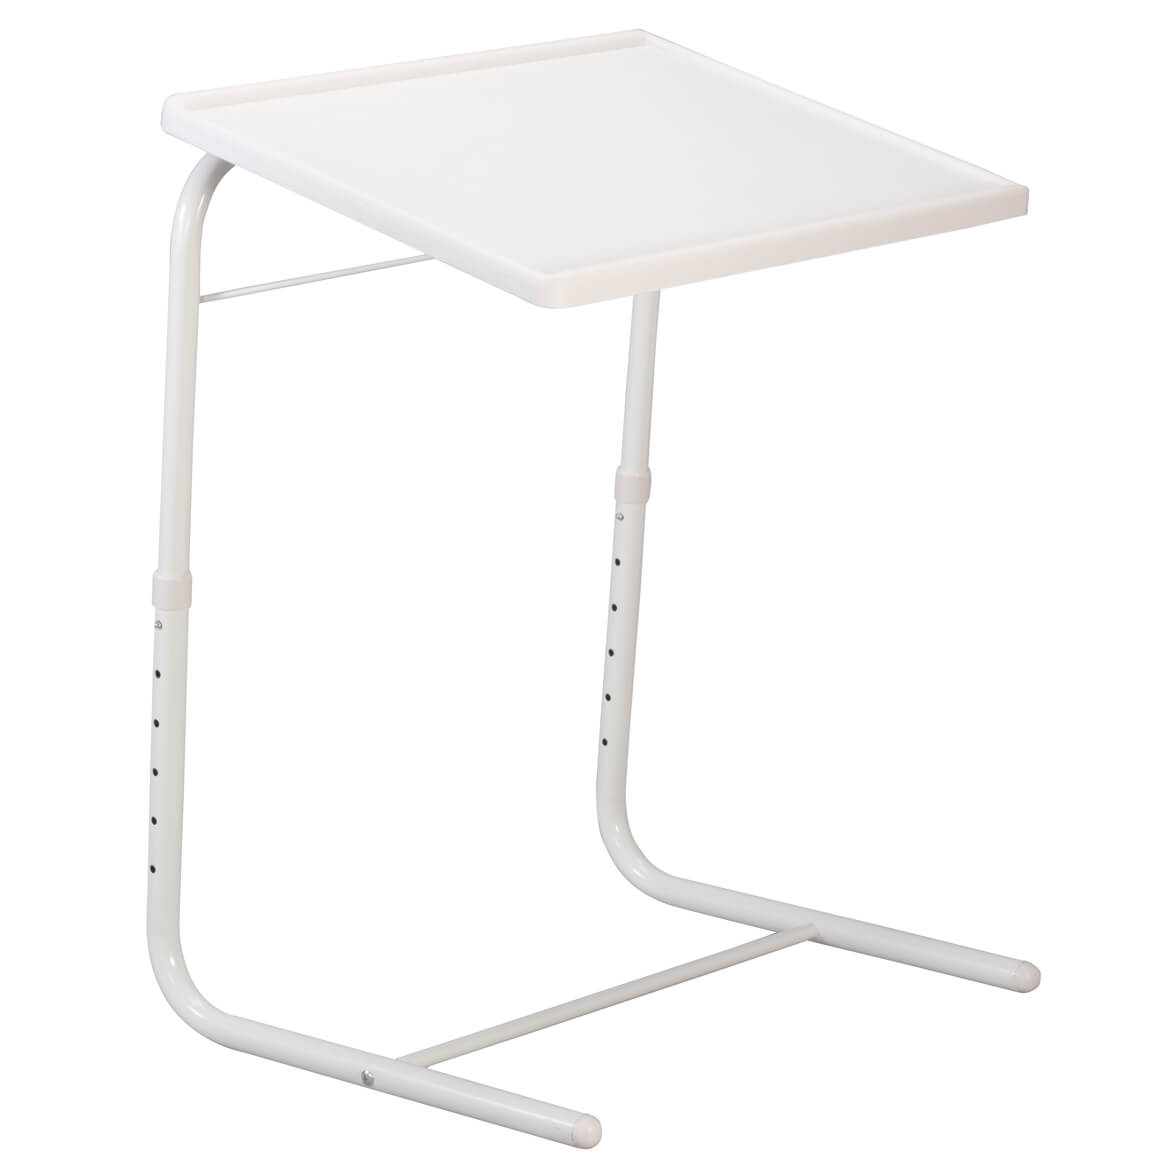 EasyComforts Adjustable Tray Table White by Generic